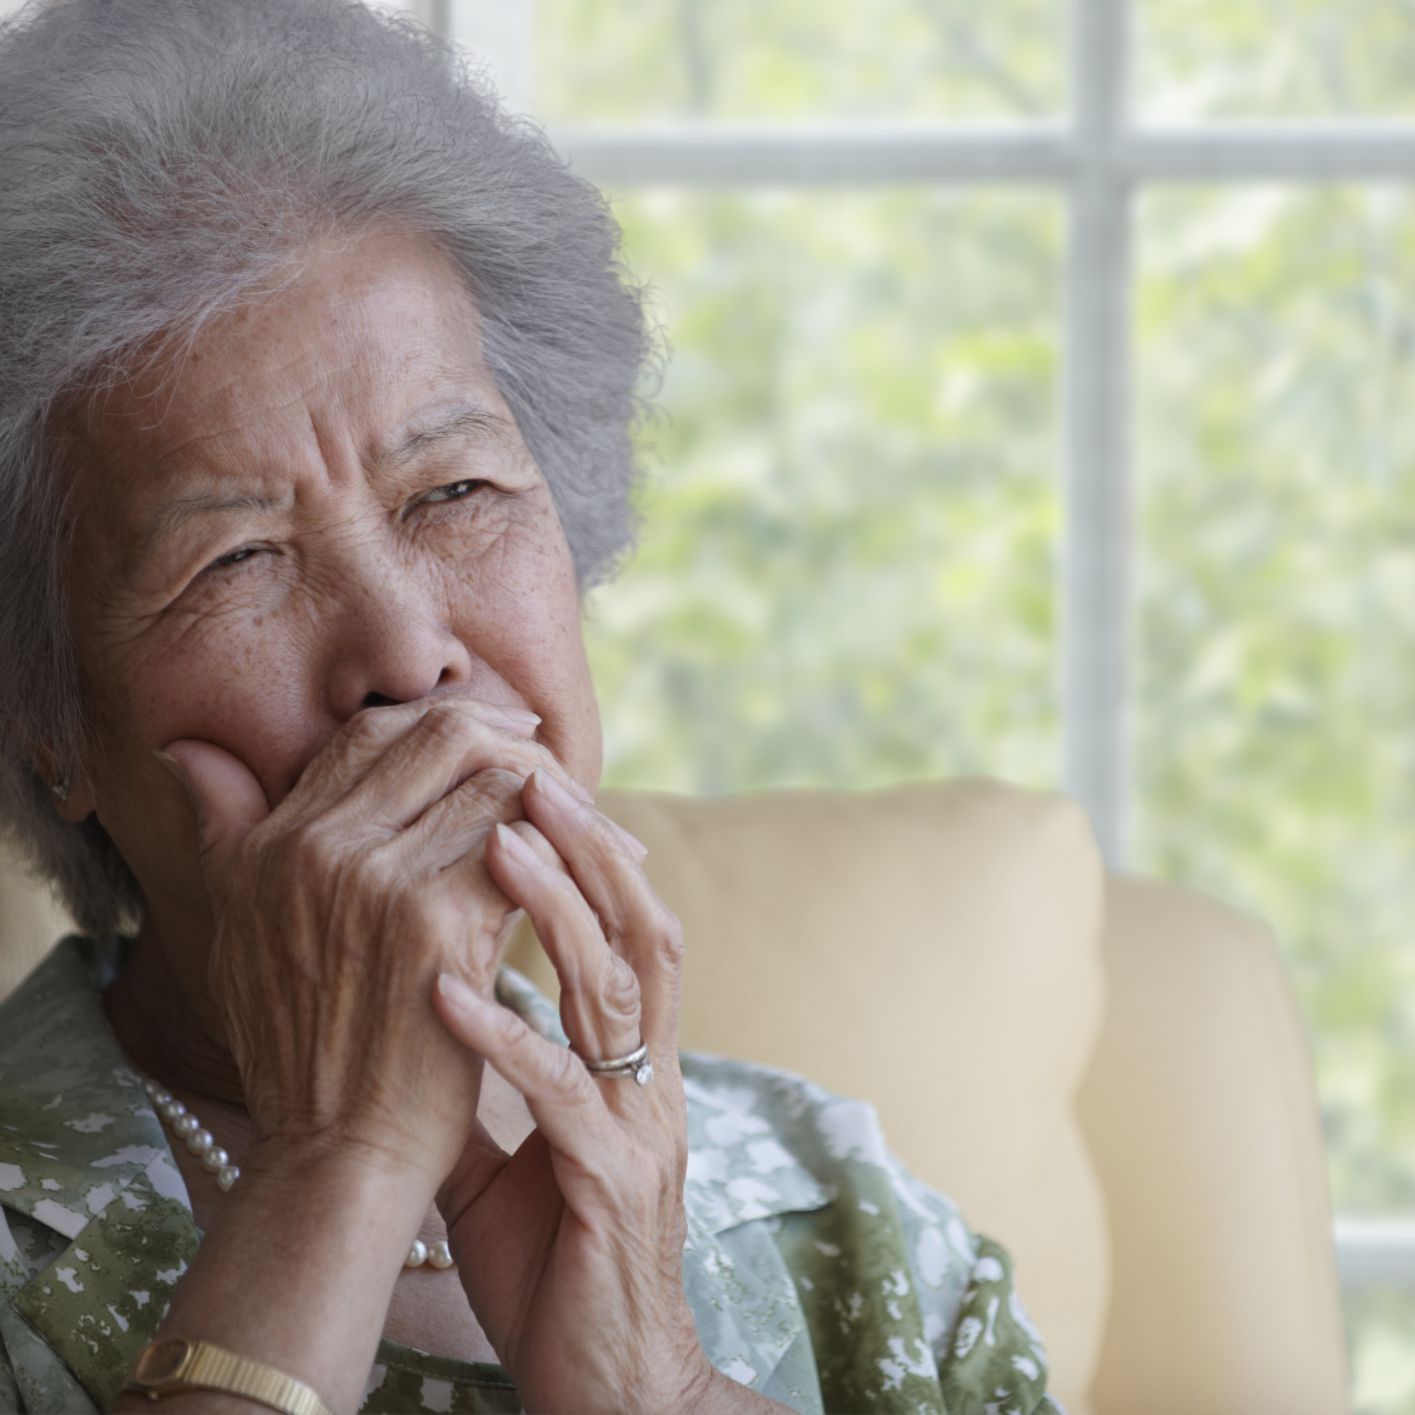 How to Handle Leaving a Loved One With Dementia After Visiting Her